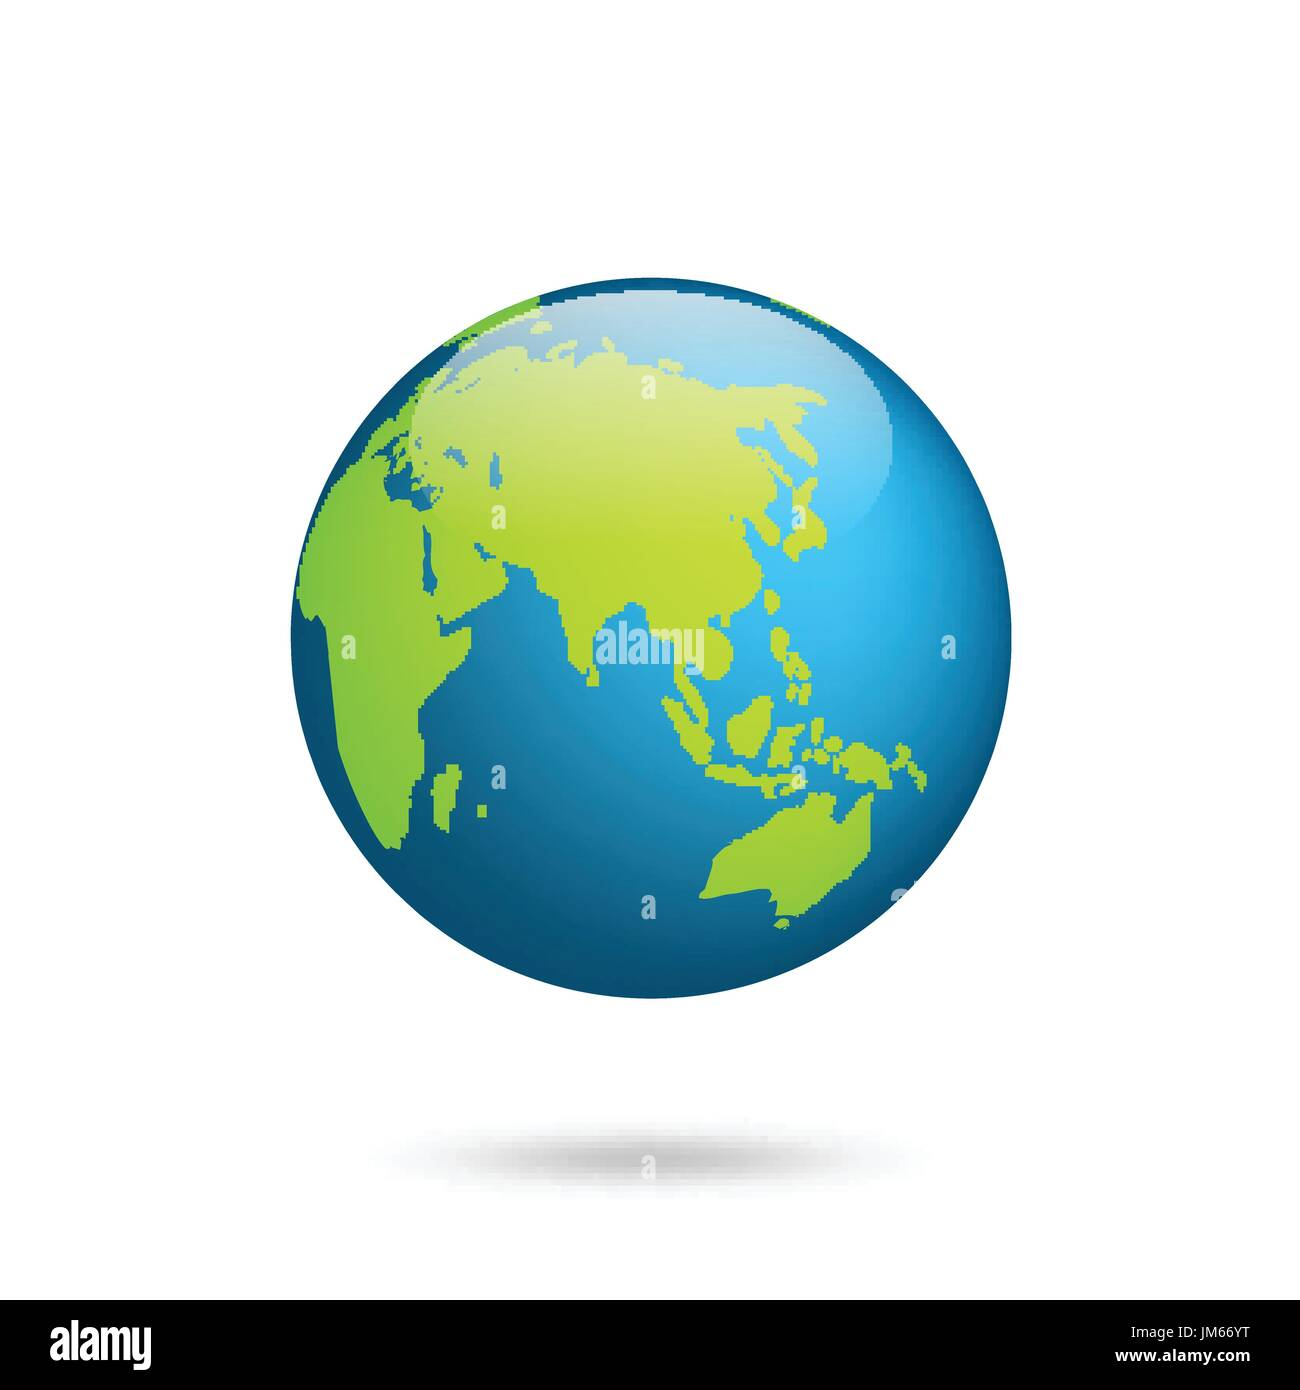 Earth globe world map set planet with continentsrica asia stock world map set planet with continentsrica asia australia europe north america and south america gumiabroncs Choice Image